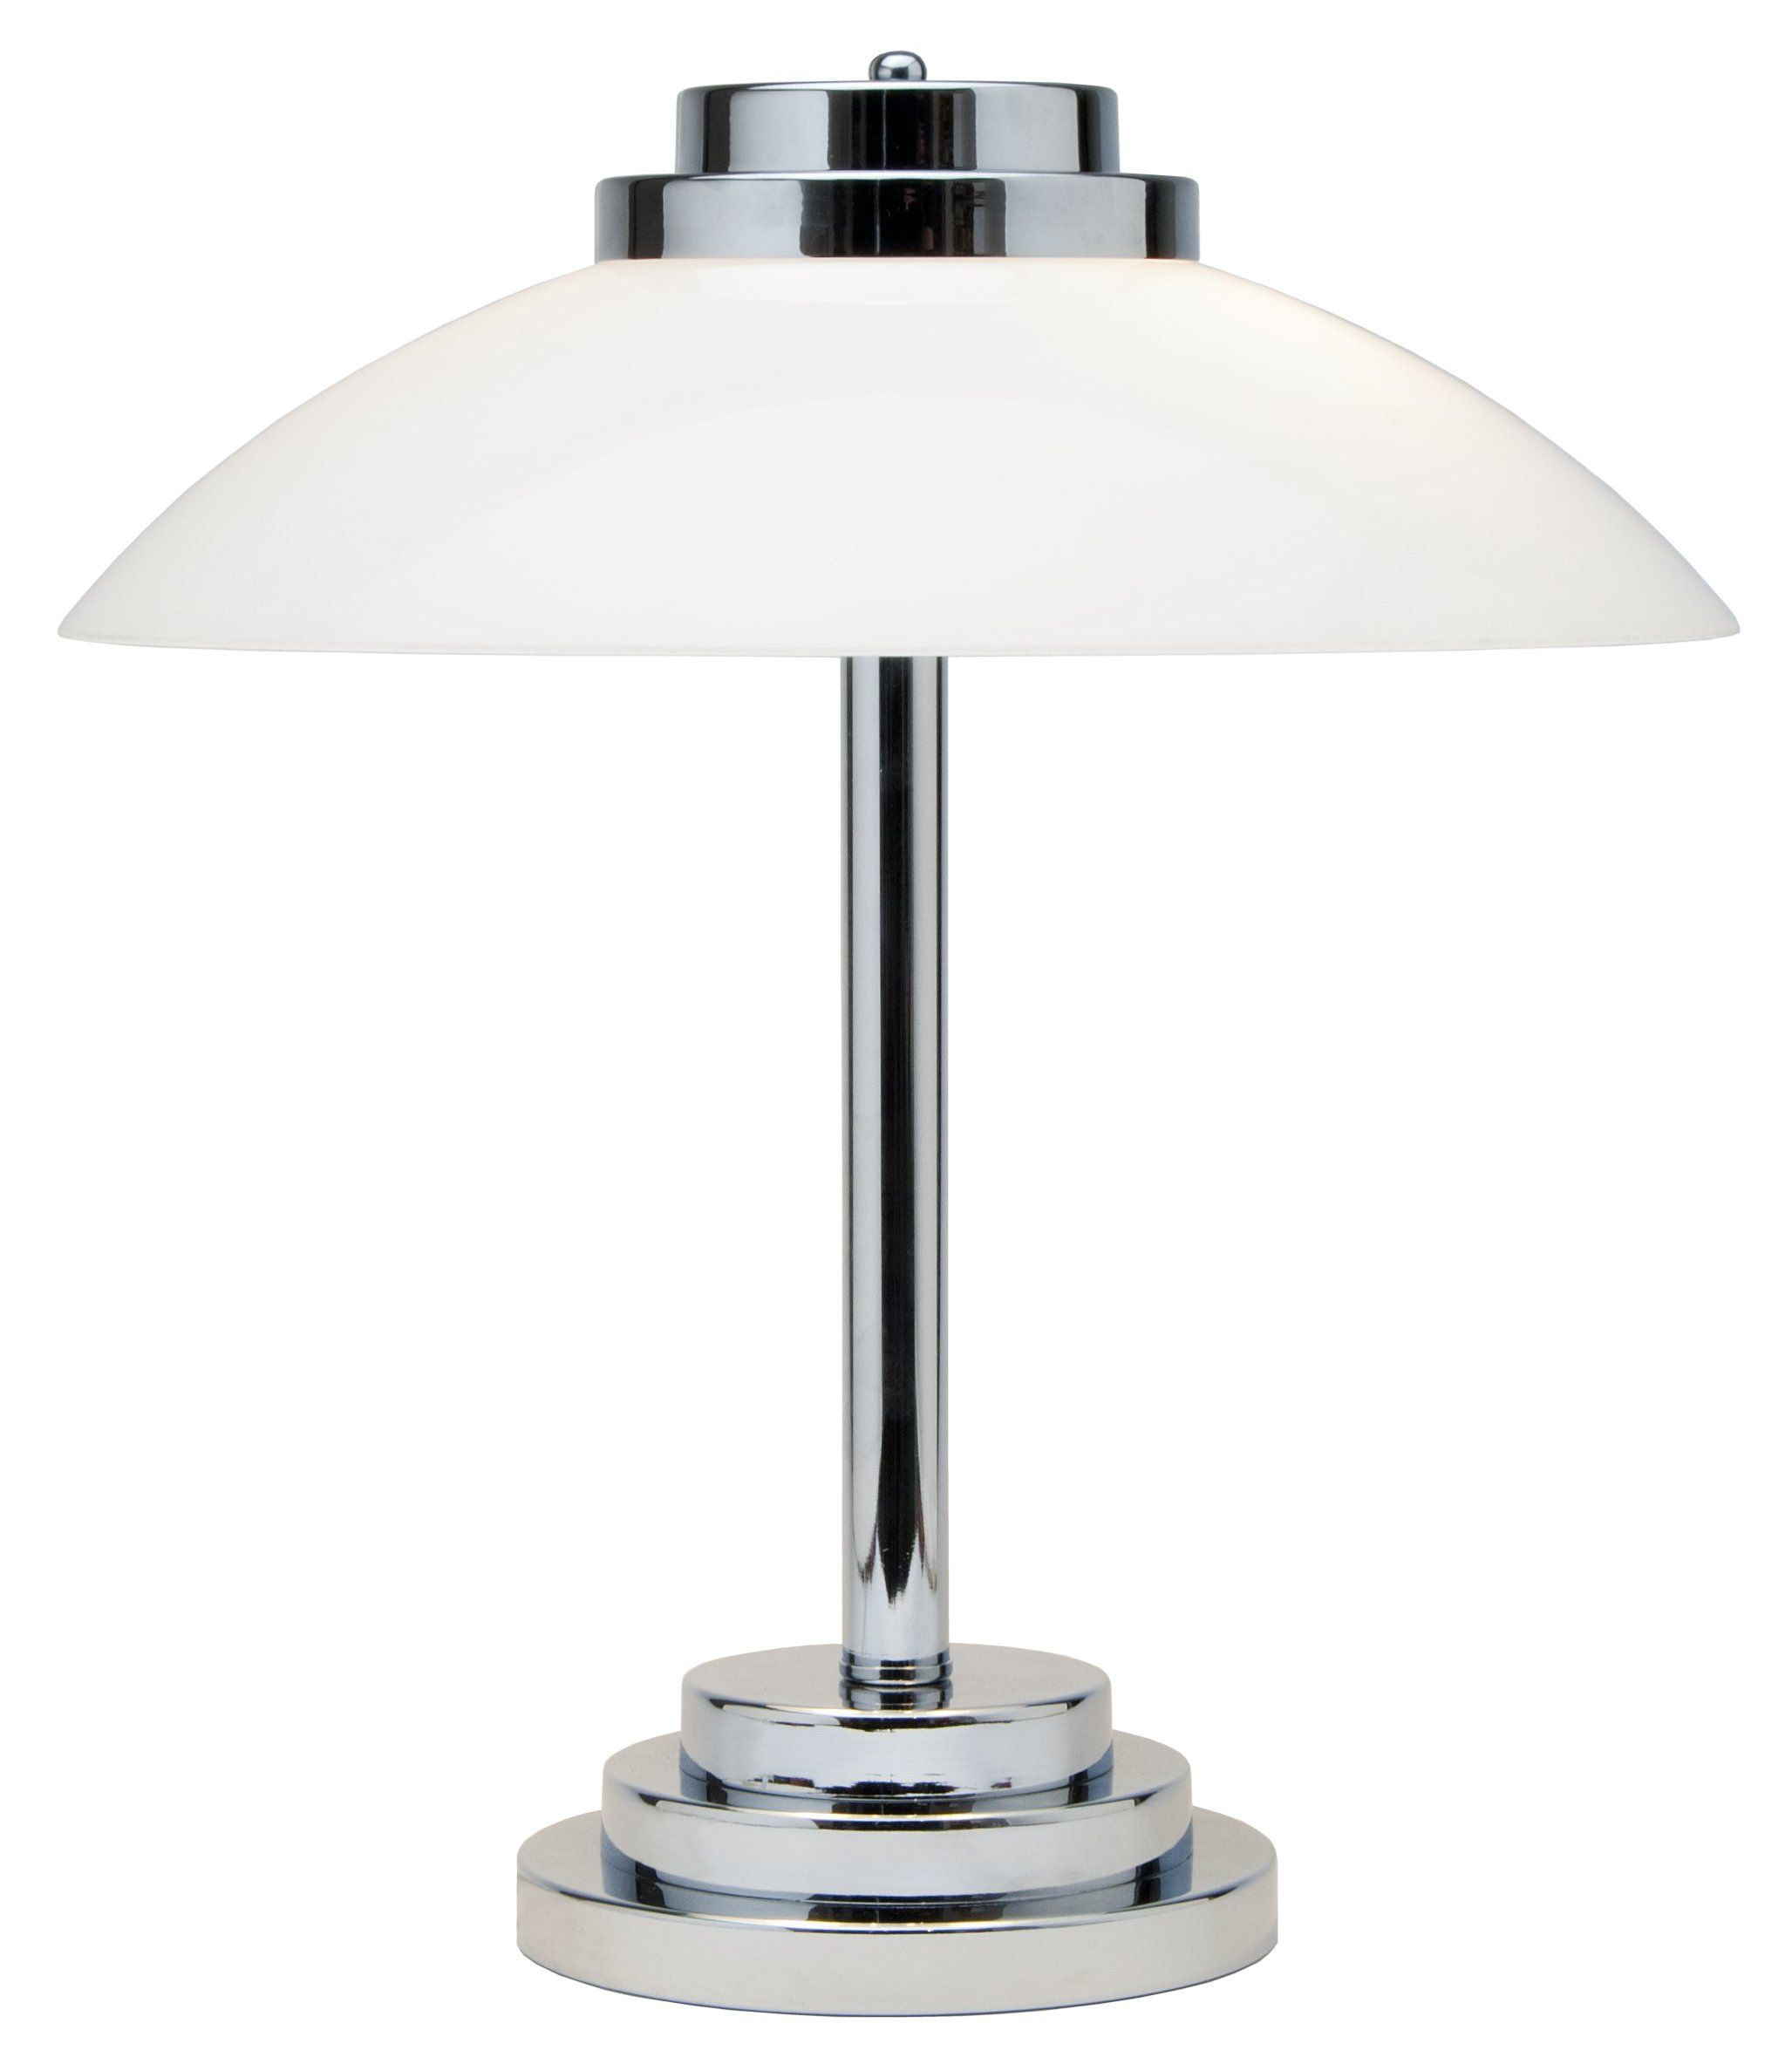 House Table Lamp Art Deco Inspired Chrome Table Lamp About The House